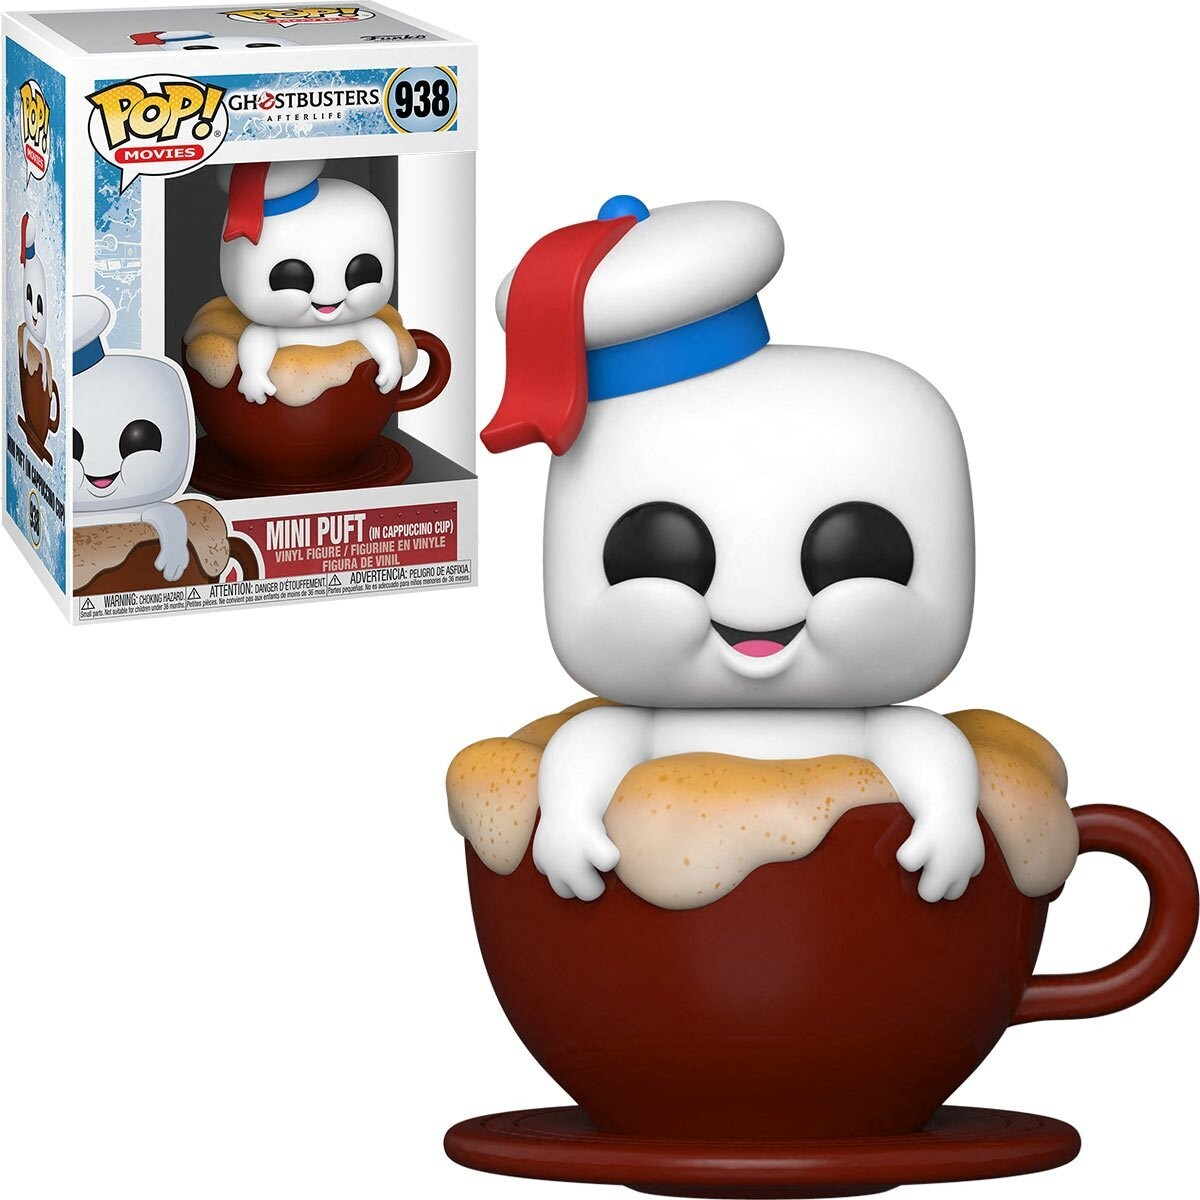 PRE-ORDER Funko Ghostbusters 3: Afterlife Mini Puft in Cappuccino Cup Pop! Vinyl Figure